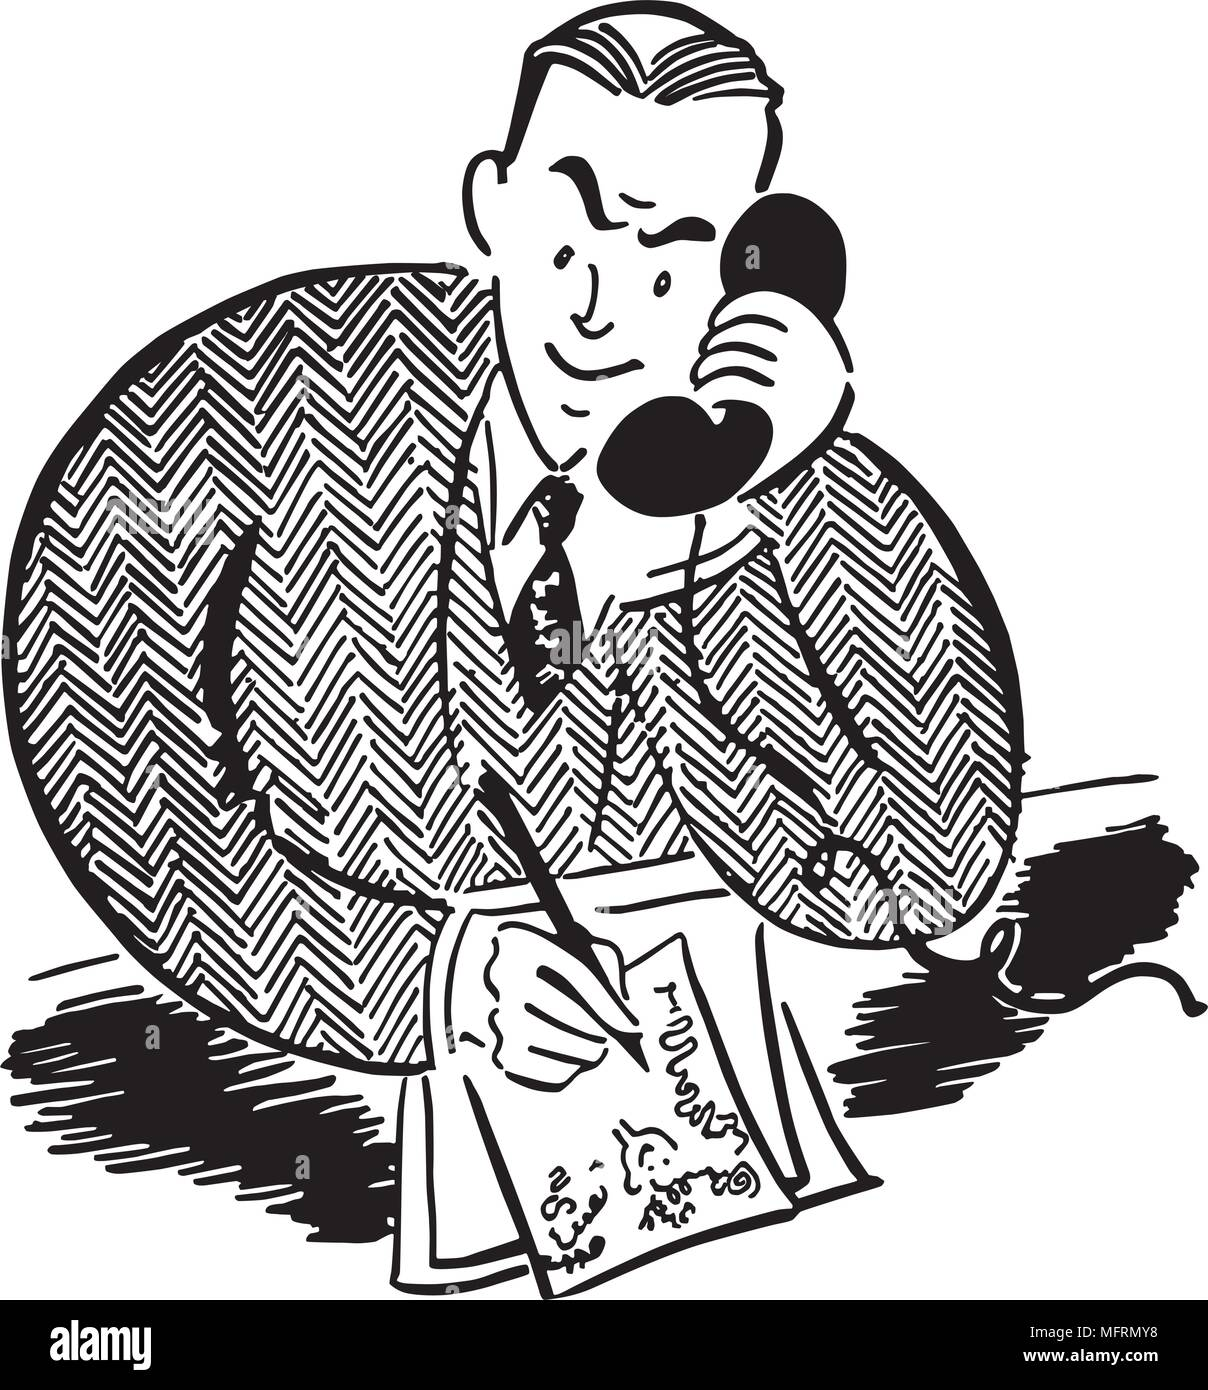 Man On The Phone 2 - Retro Clipart Illustration - Stock Image